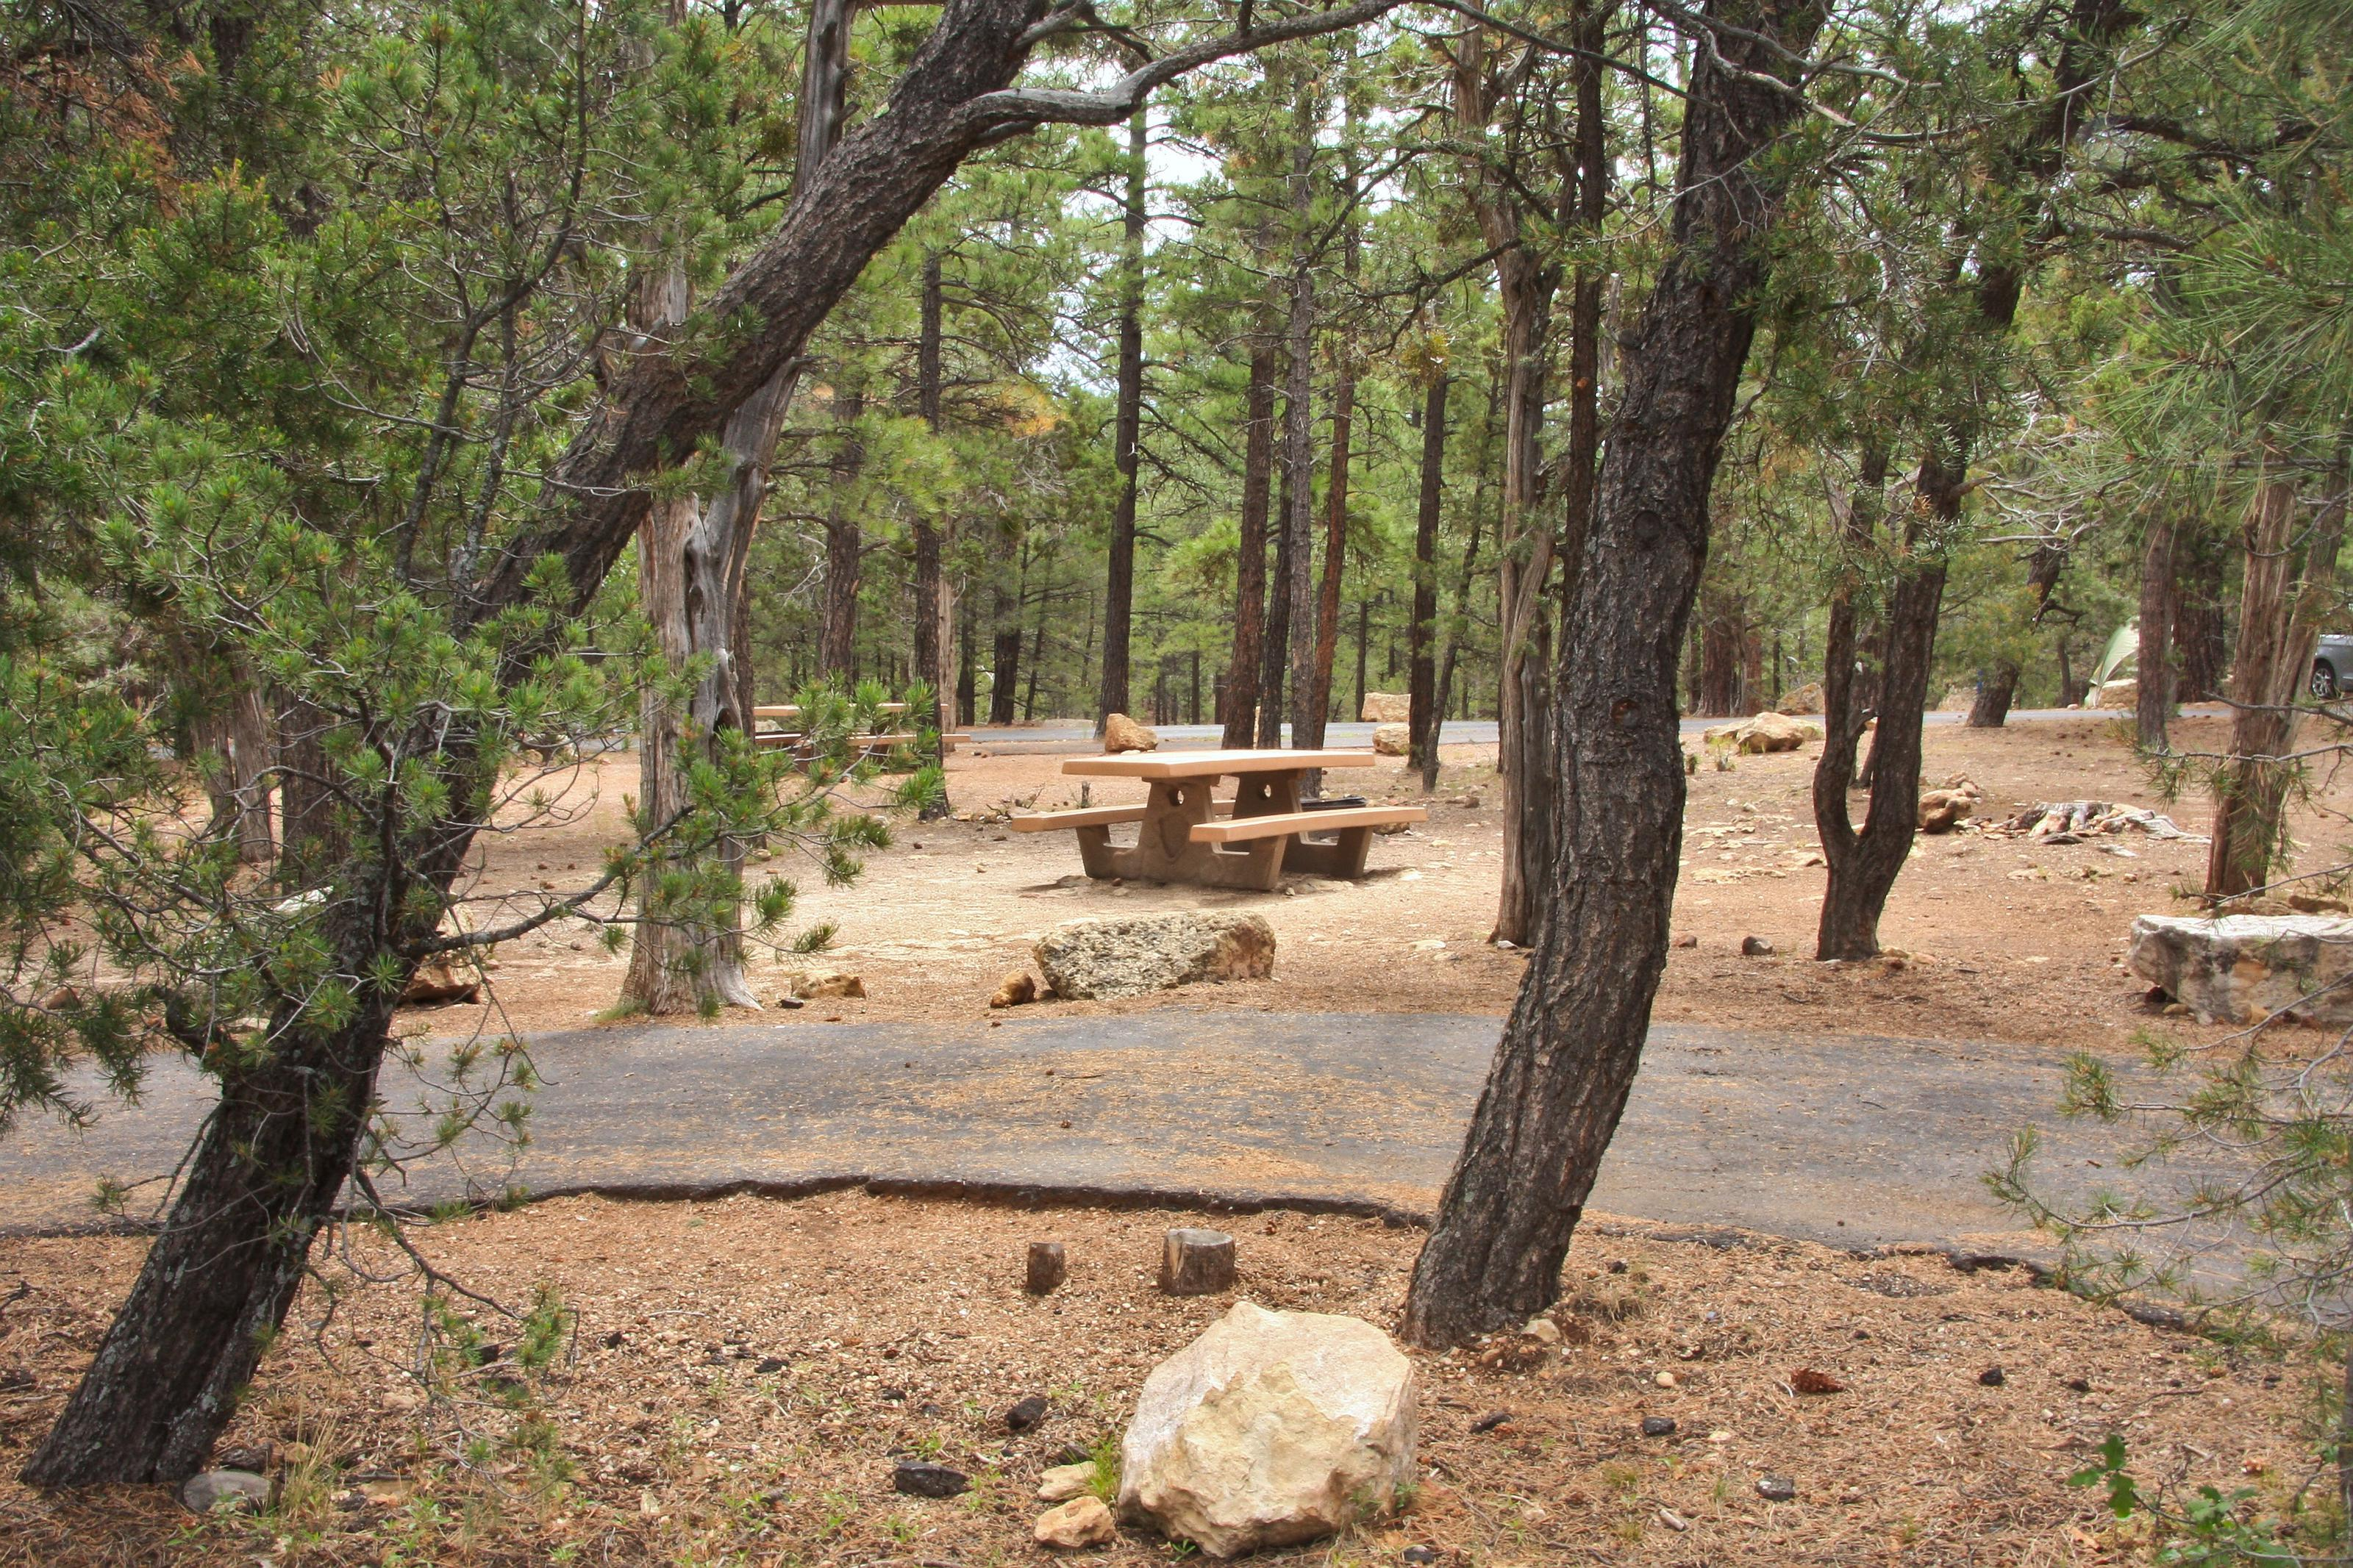 Picnic tableand parking spot, Mather CampgroundThe picnic table and parking spot for Aspen Loop 28, Mather Campground